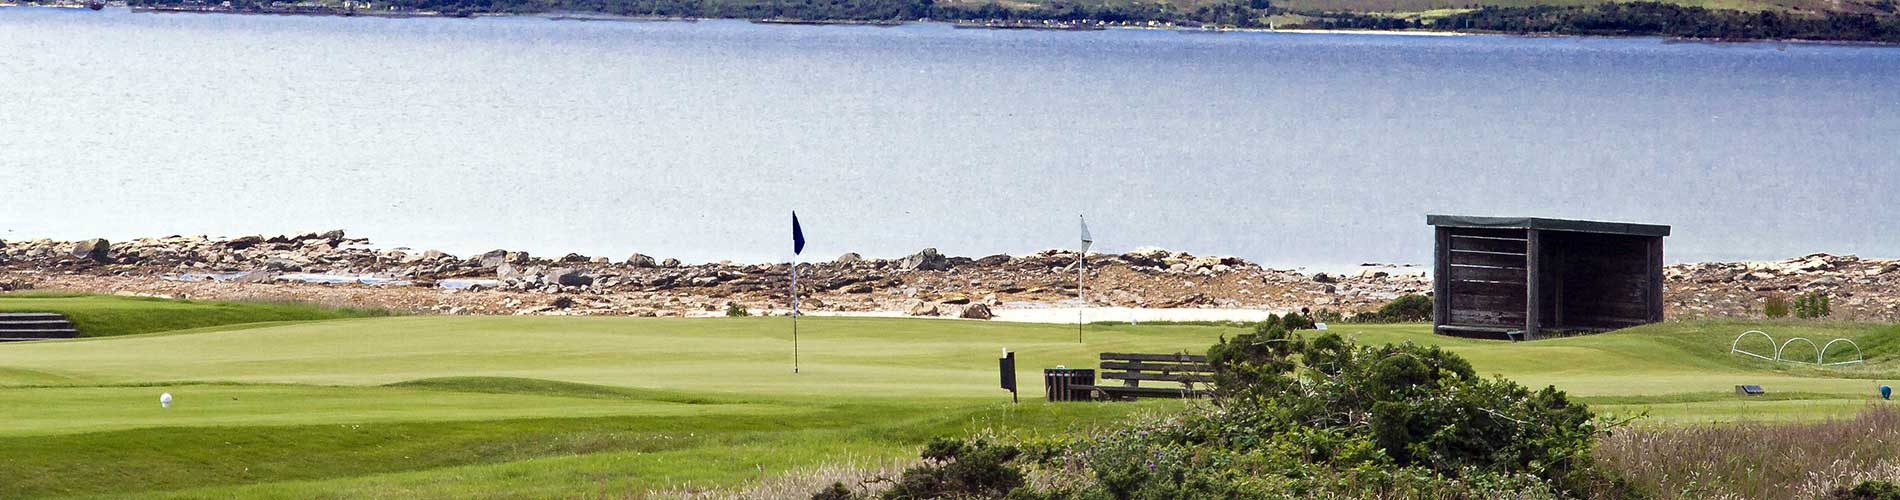 The West Kilbride Golf Club